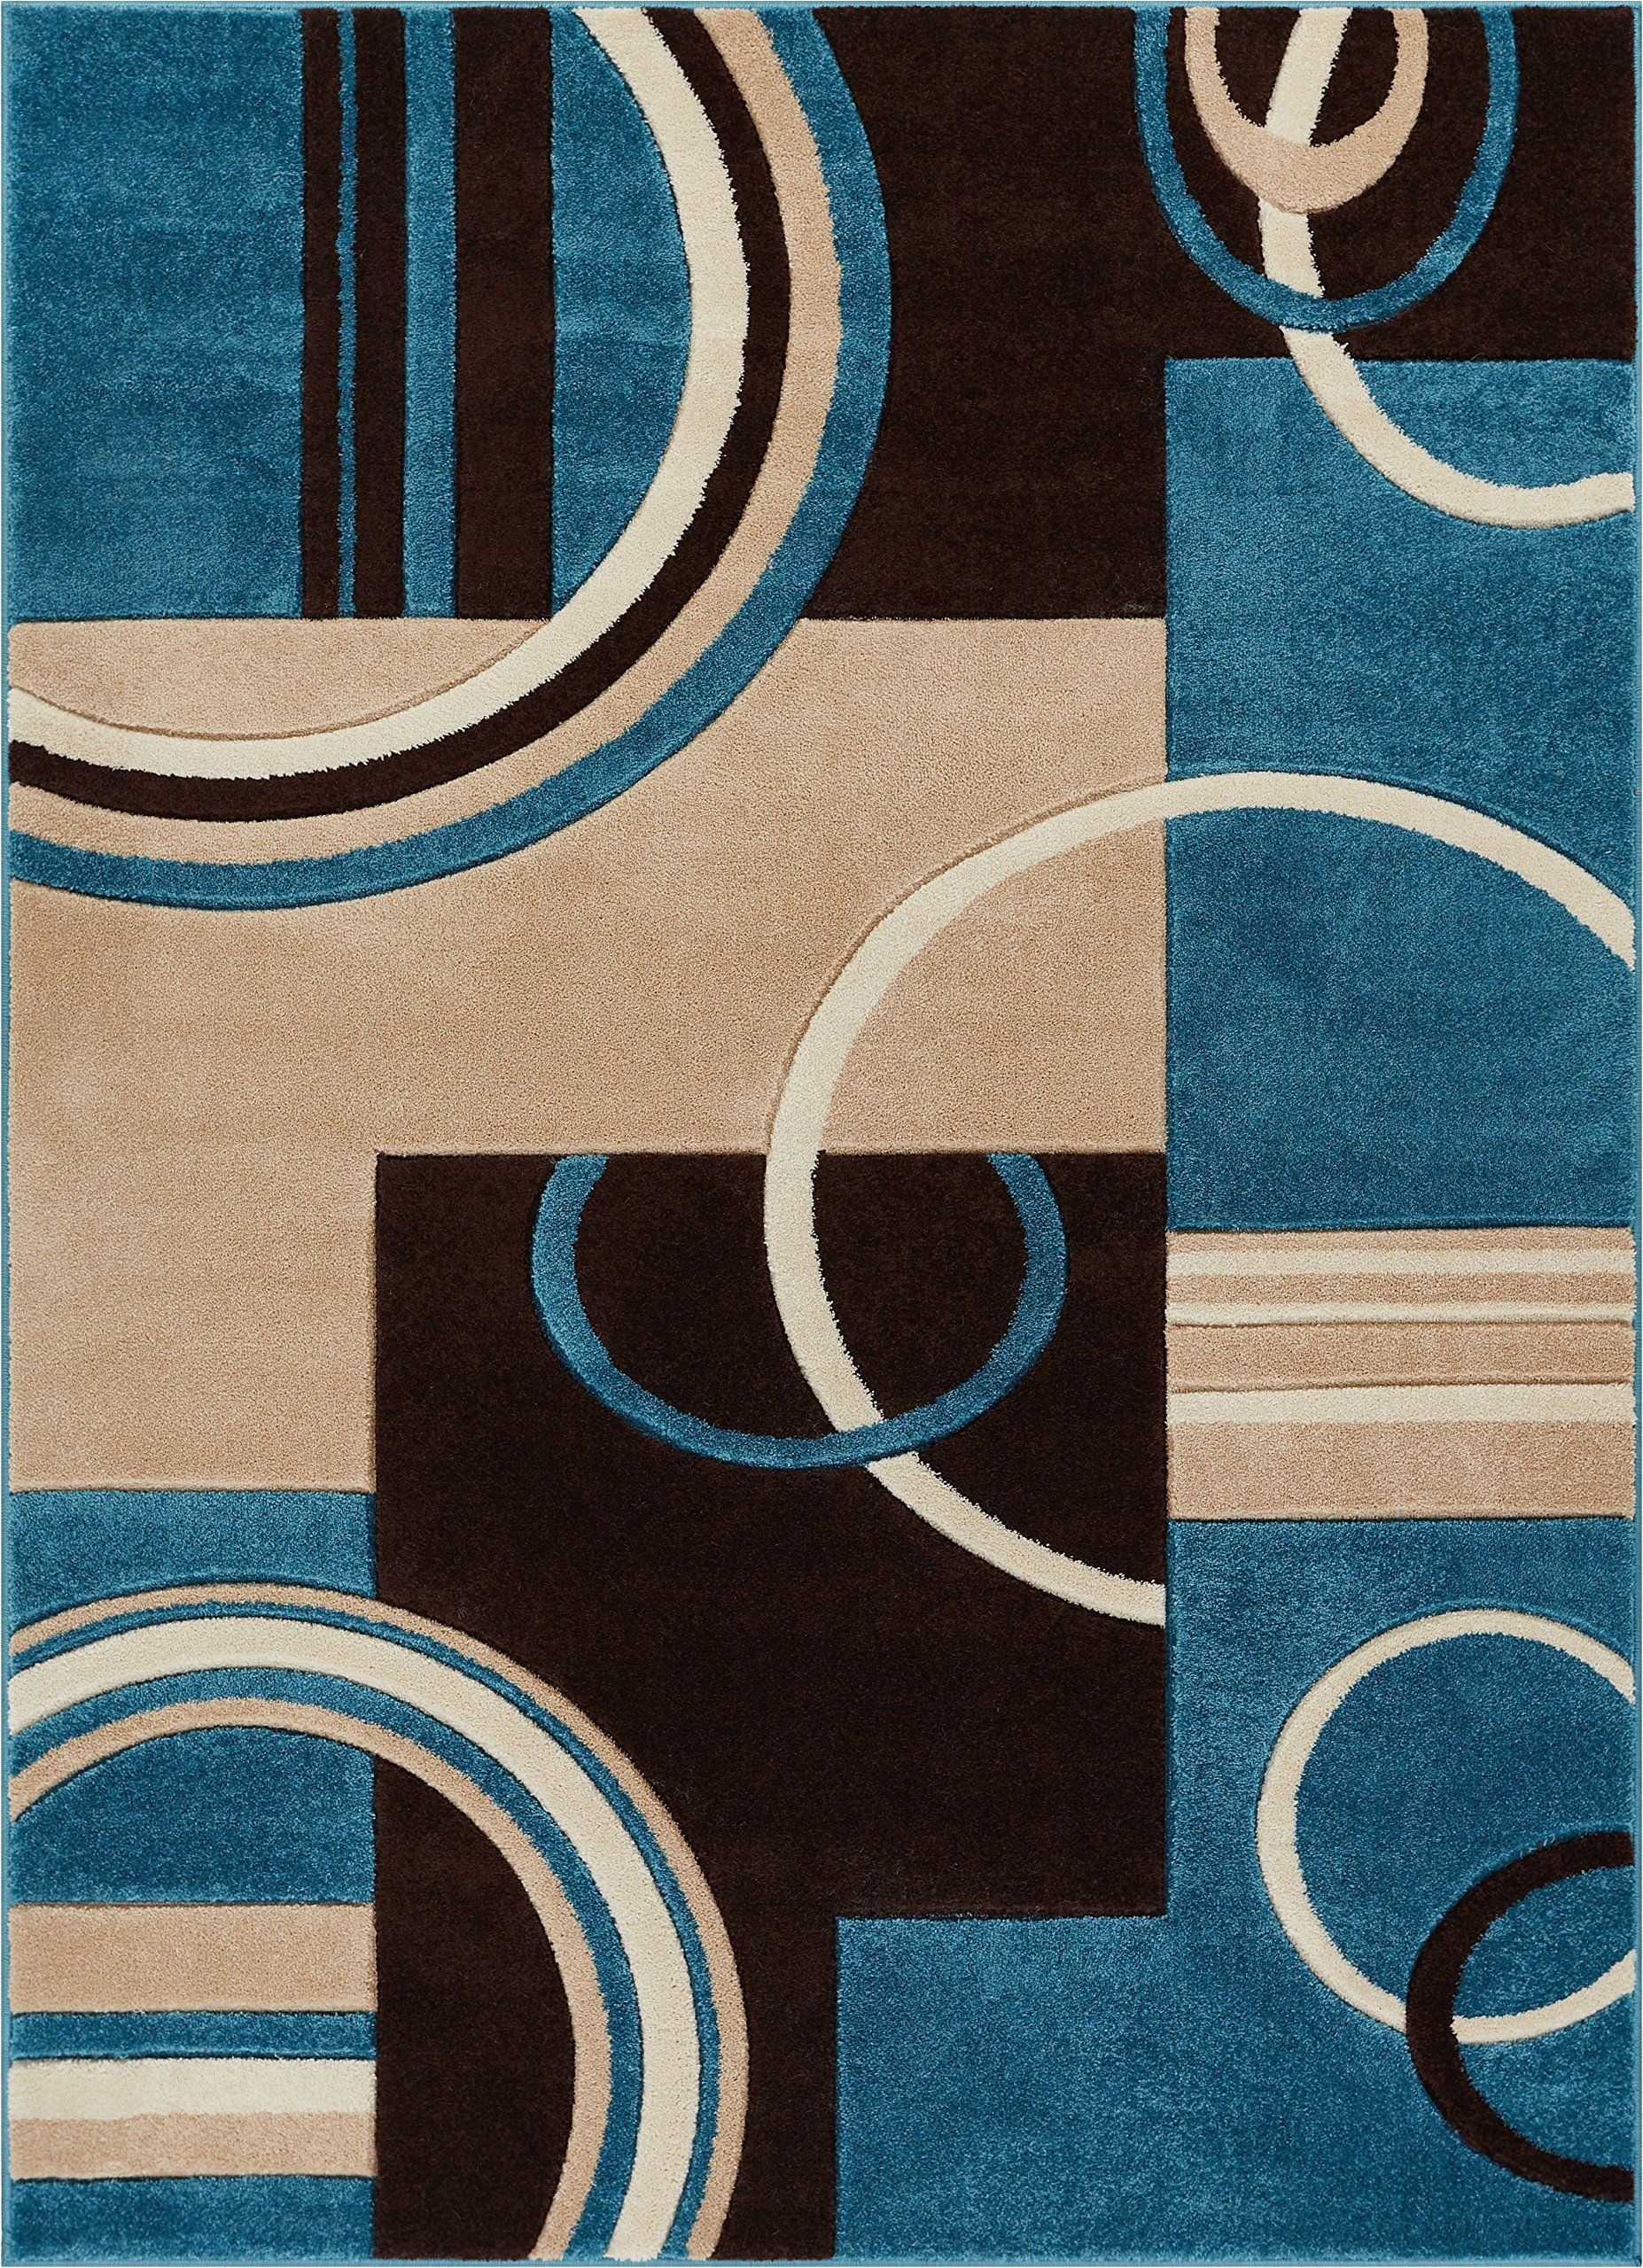 Blue Brown Circle area Rug Echo Shapes and Circles Blue and Brown Modern Geometric